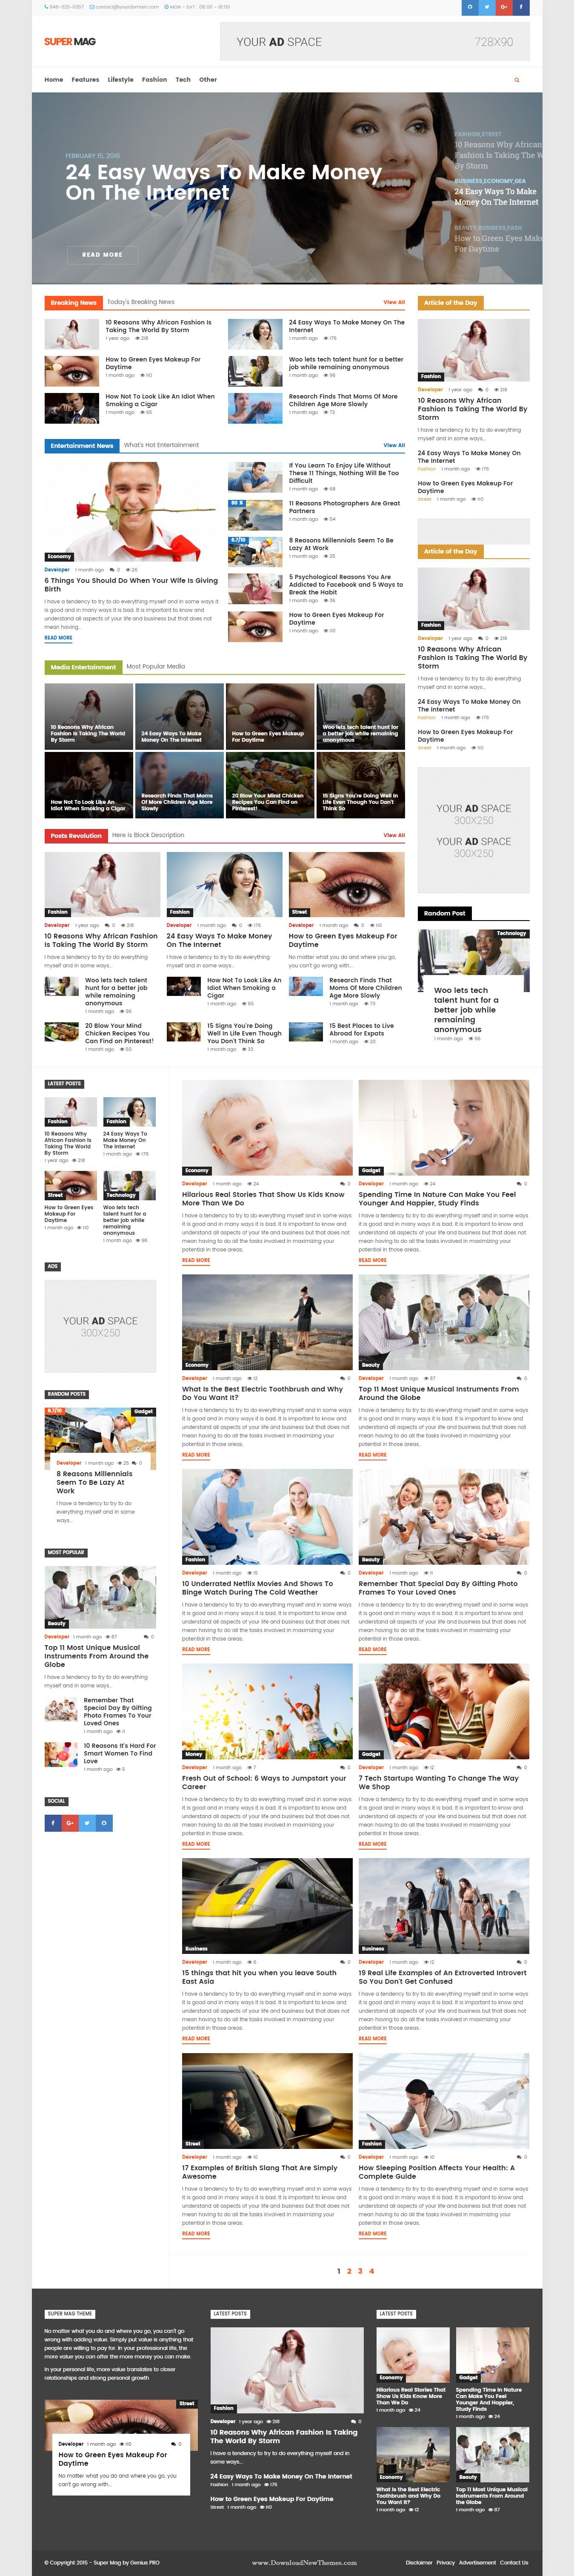 Super Mag - News Magazine and Blog WordPress Theme | Wordpress ...